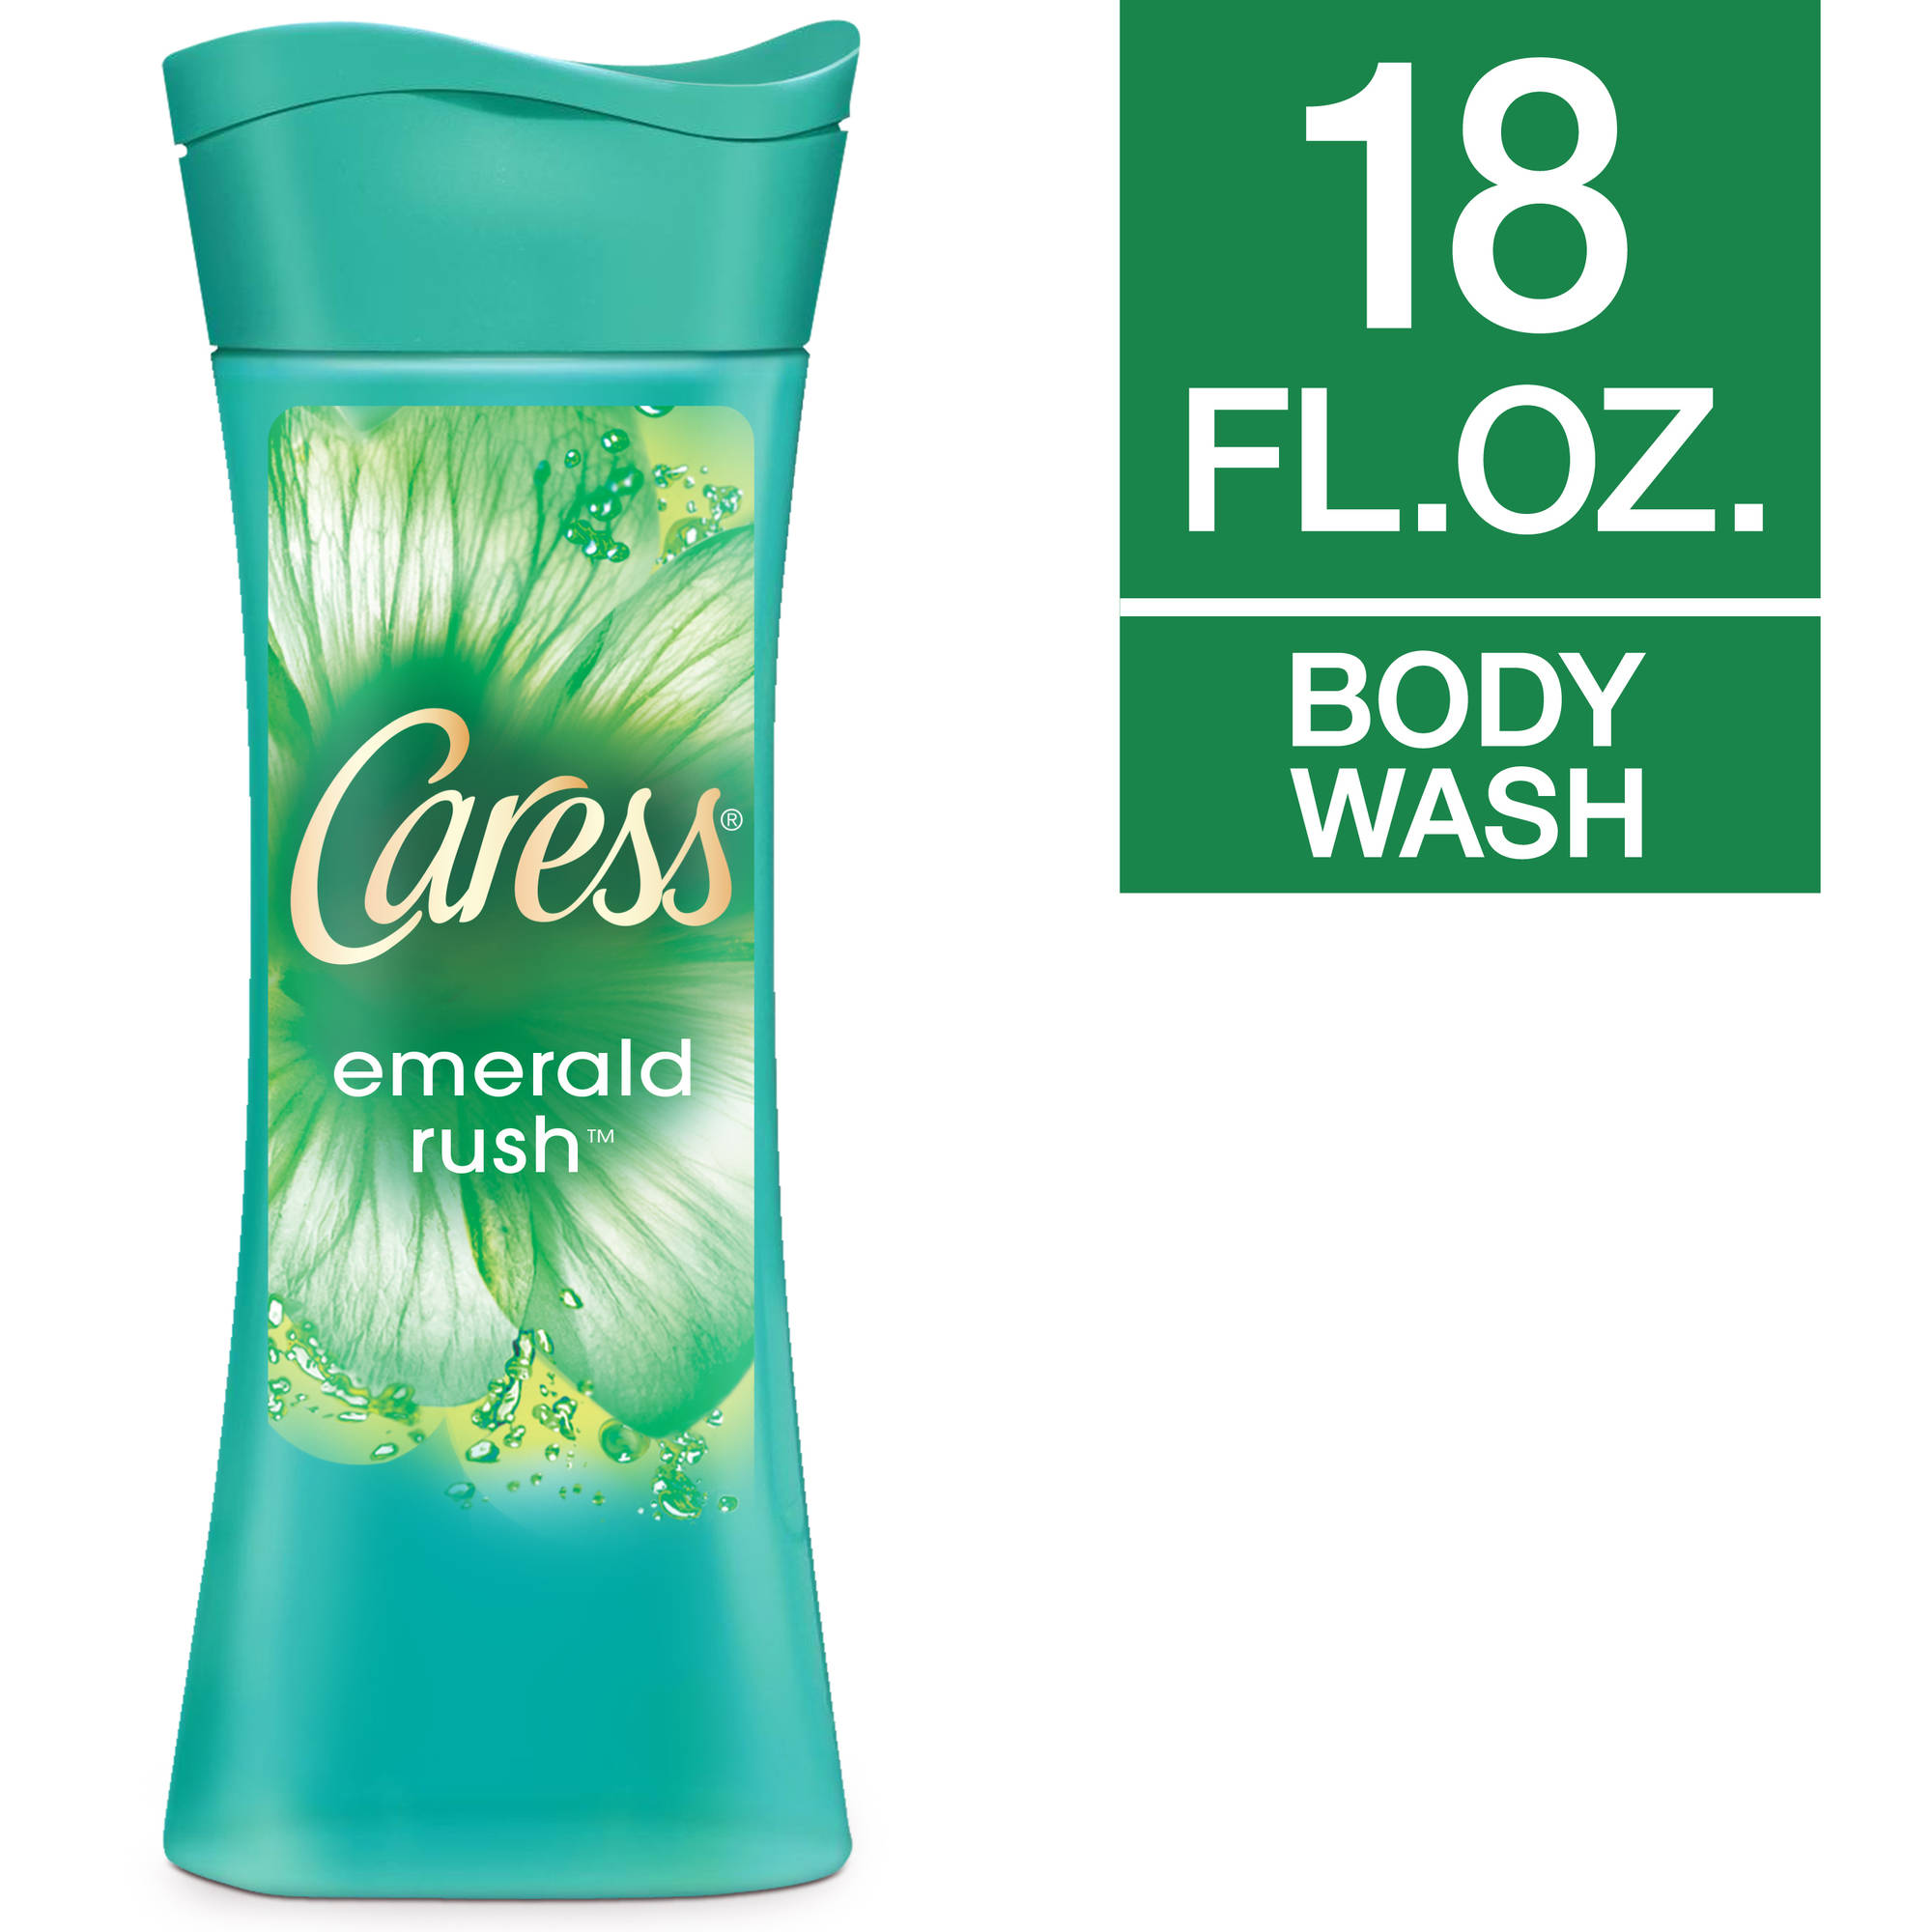 Caress Emerald Rush Lush Gardenia & White Tea Essence Fresh Body Wash, 18 fl oz